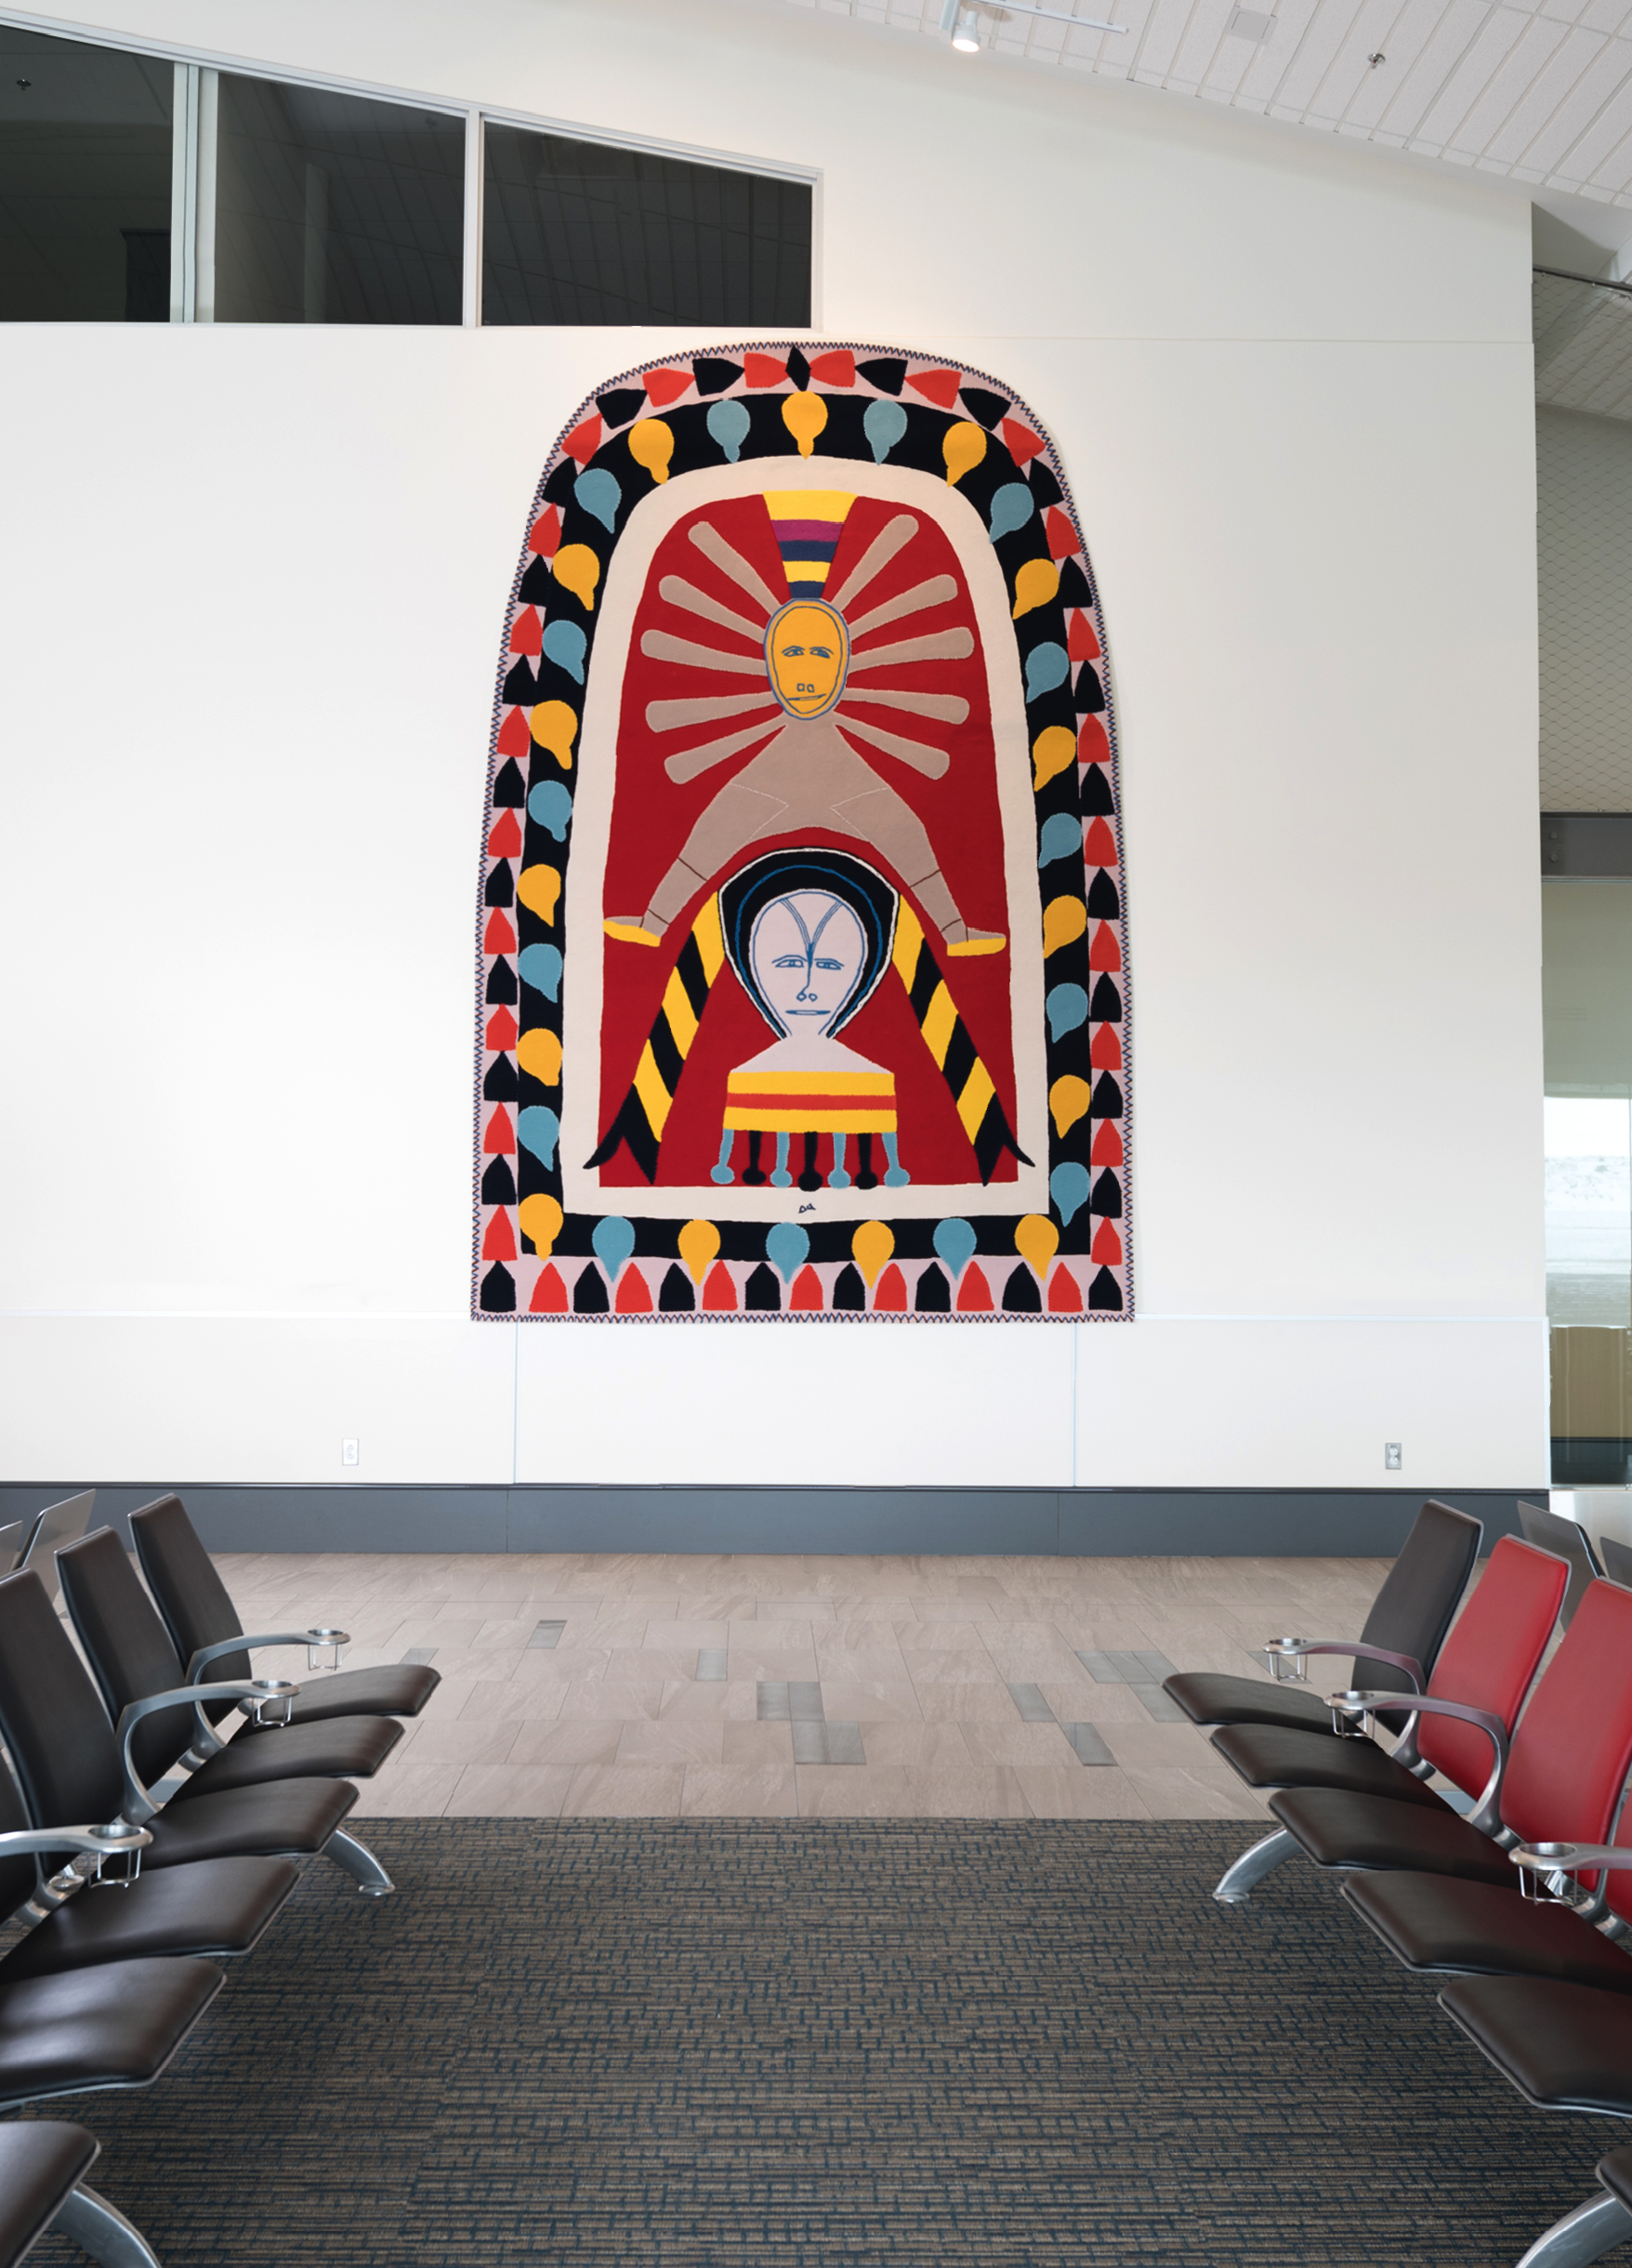 """- """"The bold use of colour and choice of symmetry in Jessie Oonark's design is strong and powerful. The composition of the overall artwork focuses on the central character, who is said to represent a Sun God.""""Kayla Bortolotto, Creative Matters Designer(Original artwork by Jessie Oonark. Canadian (Baker Lake), 1906–1985. Untitled, c.1972–1973. Wool felt on wool duffle. Government of Nunavut Fine Art Collection. On long-term loan to the Winnipeg Art Gallery, 2.76.2)"""